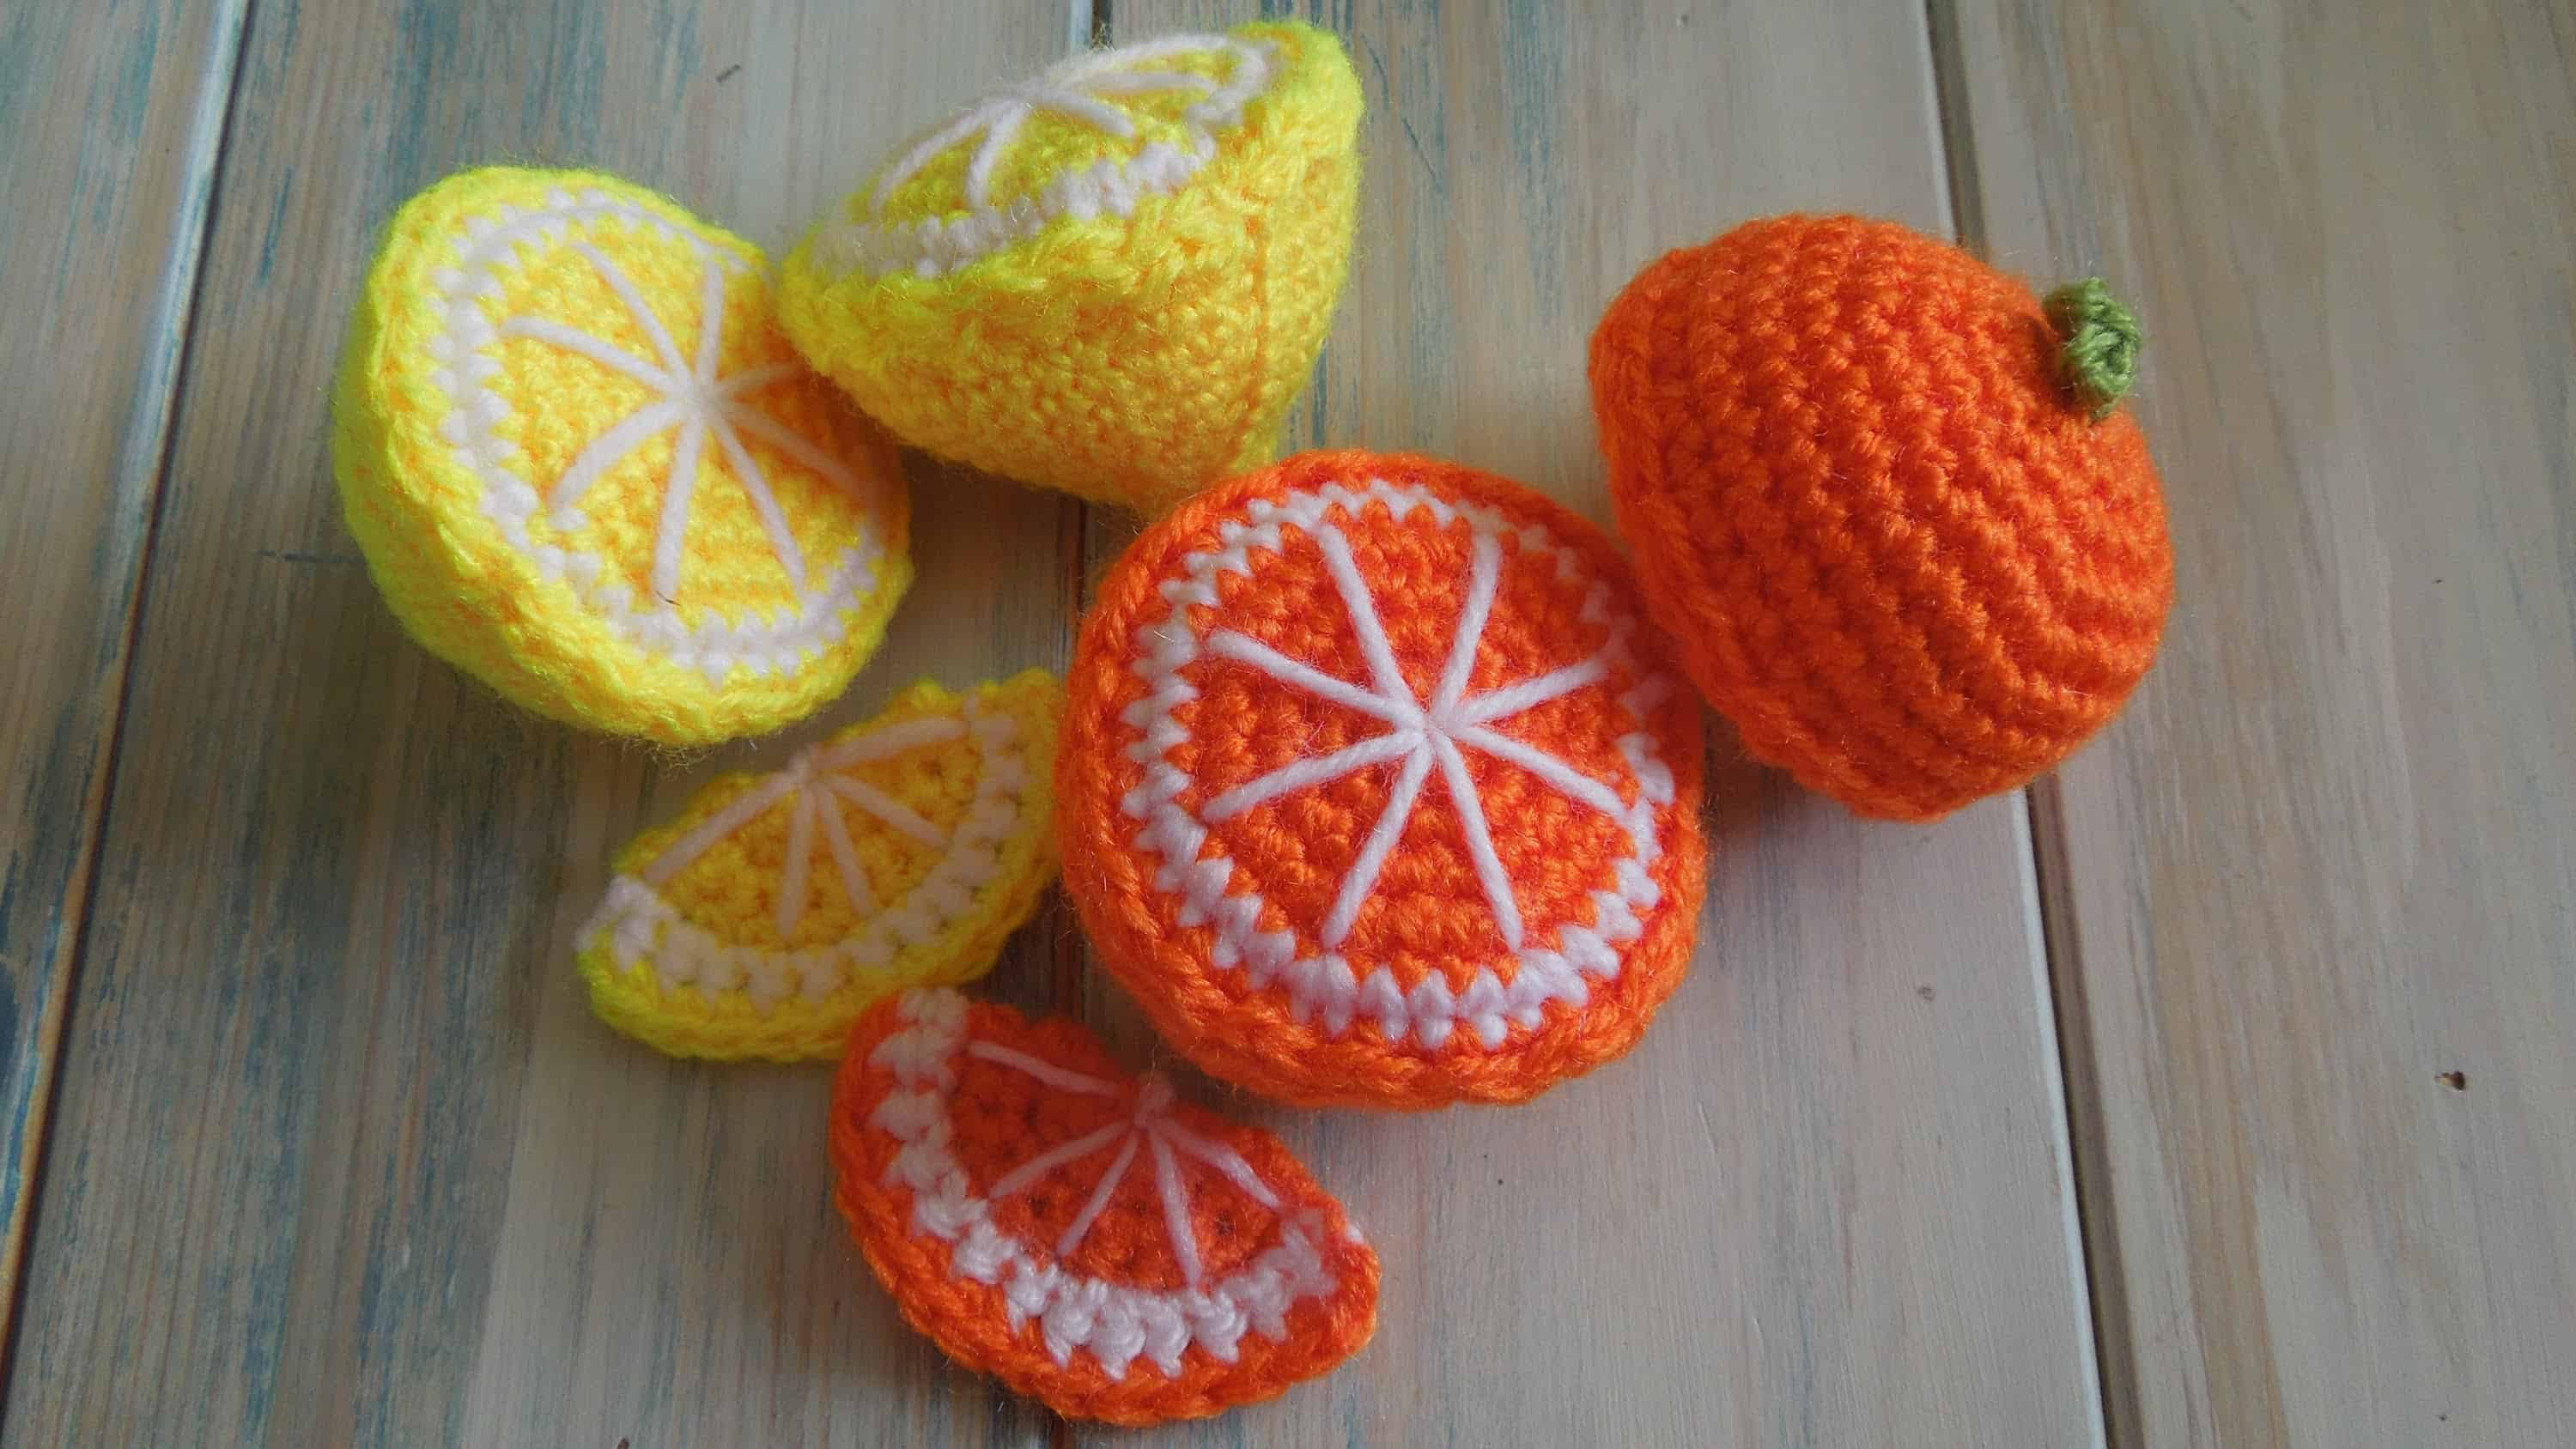 Crocheted half lemons and oranges